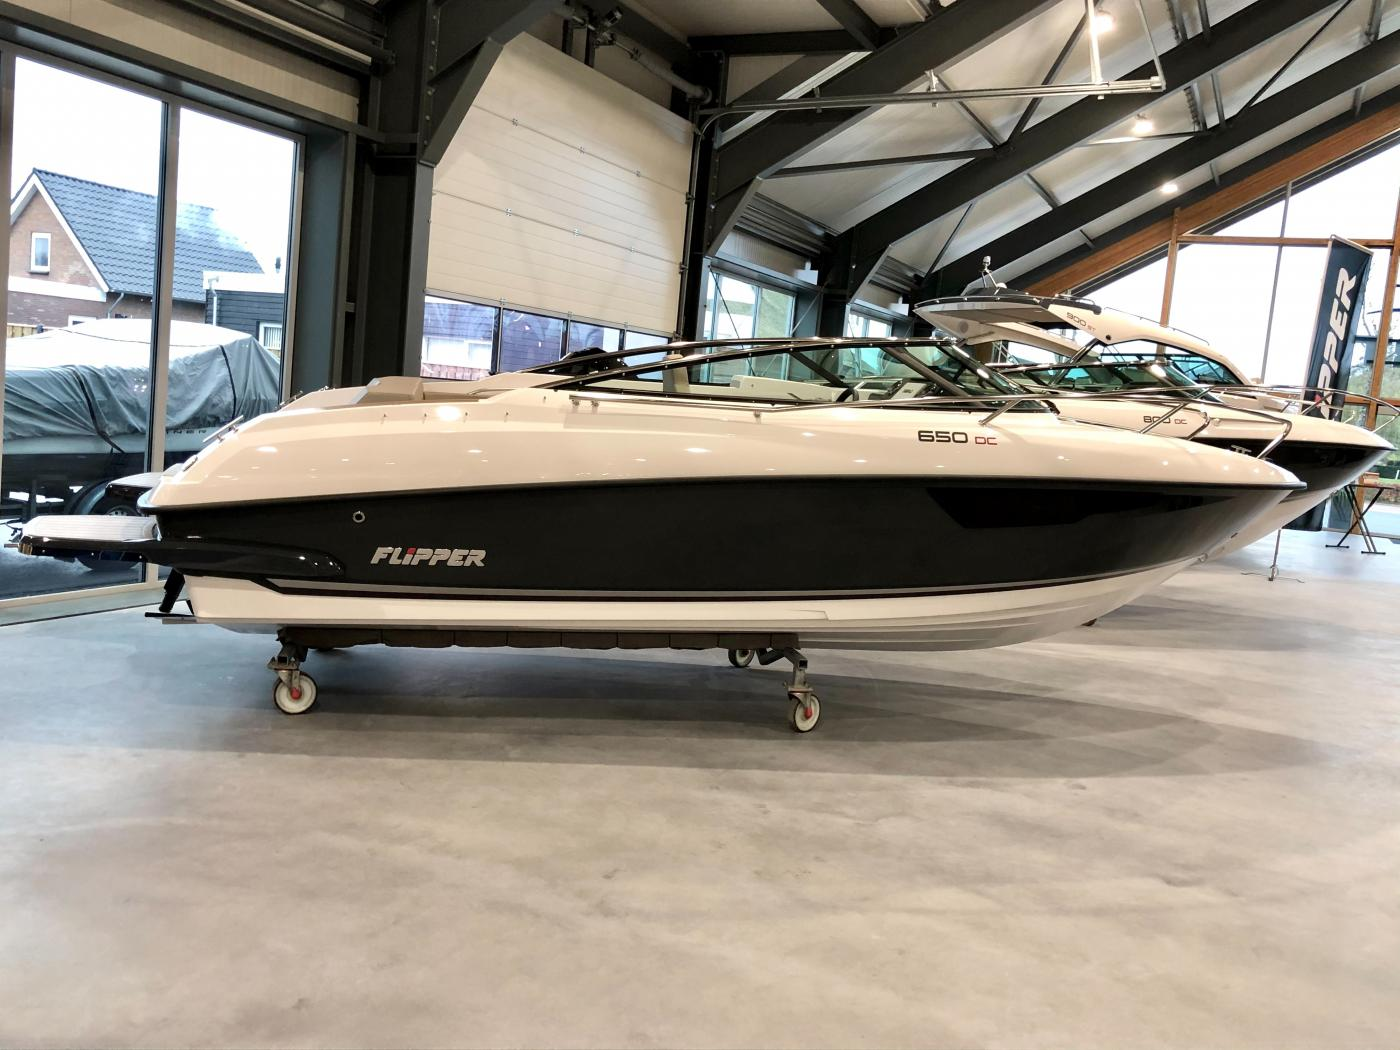 Te koop Flipper 650 DC Sportcruisers | Bomert Watersport